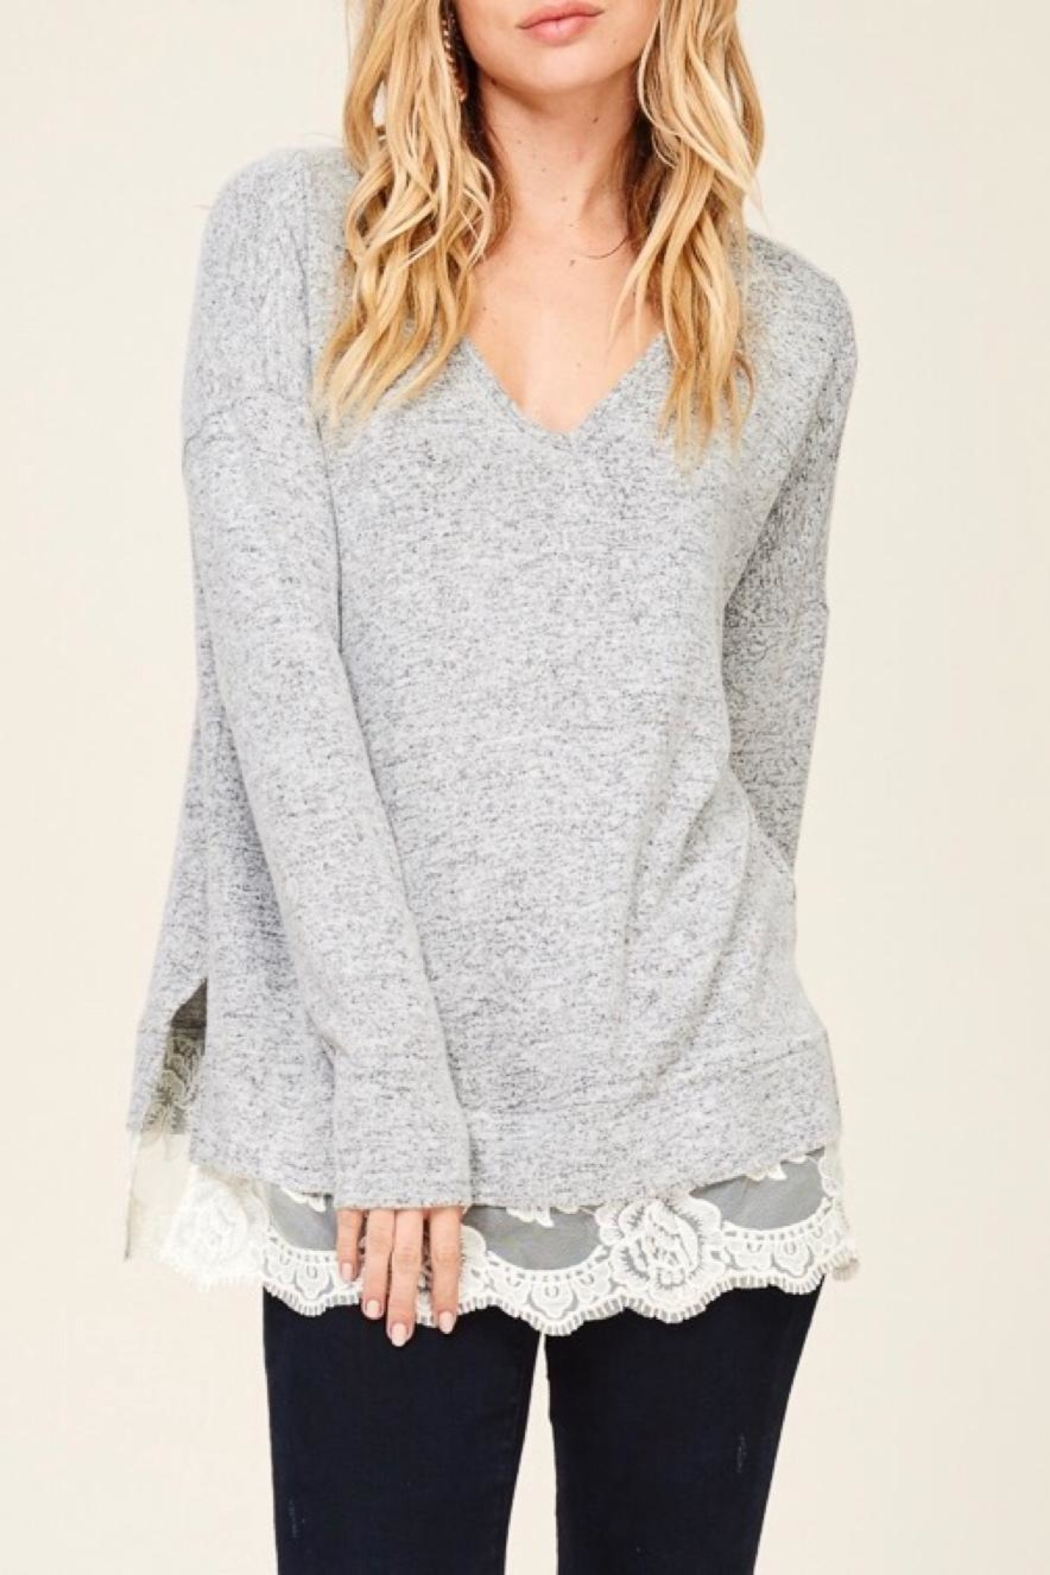 LuLu's Boutique Lace Trim Top - Side Cropped Image